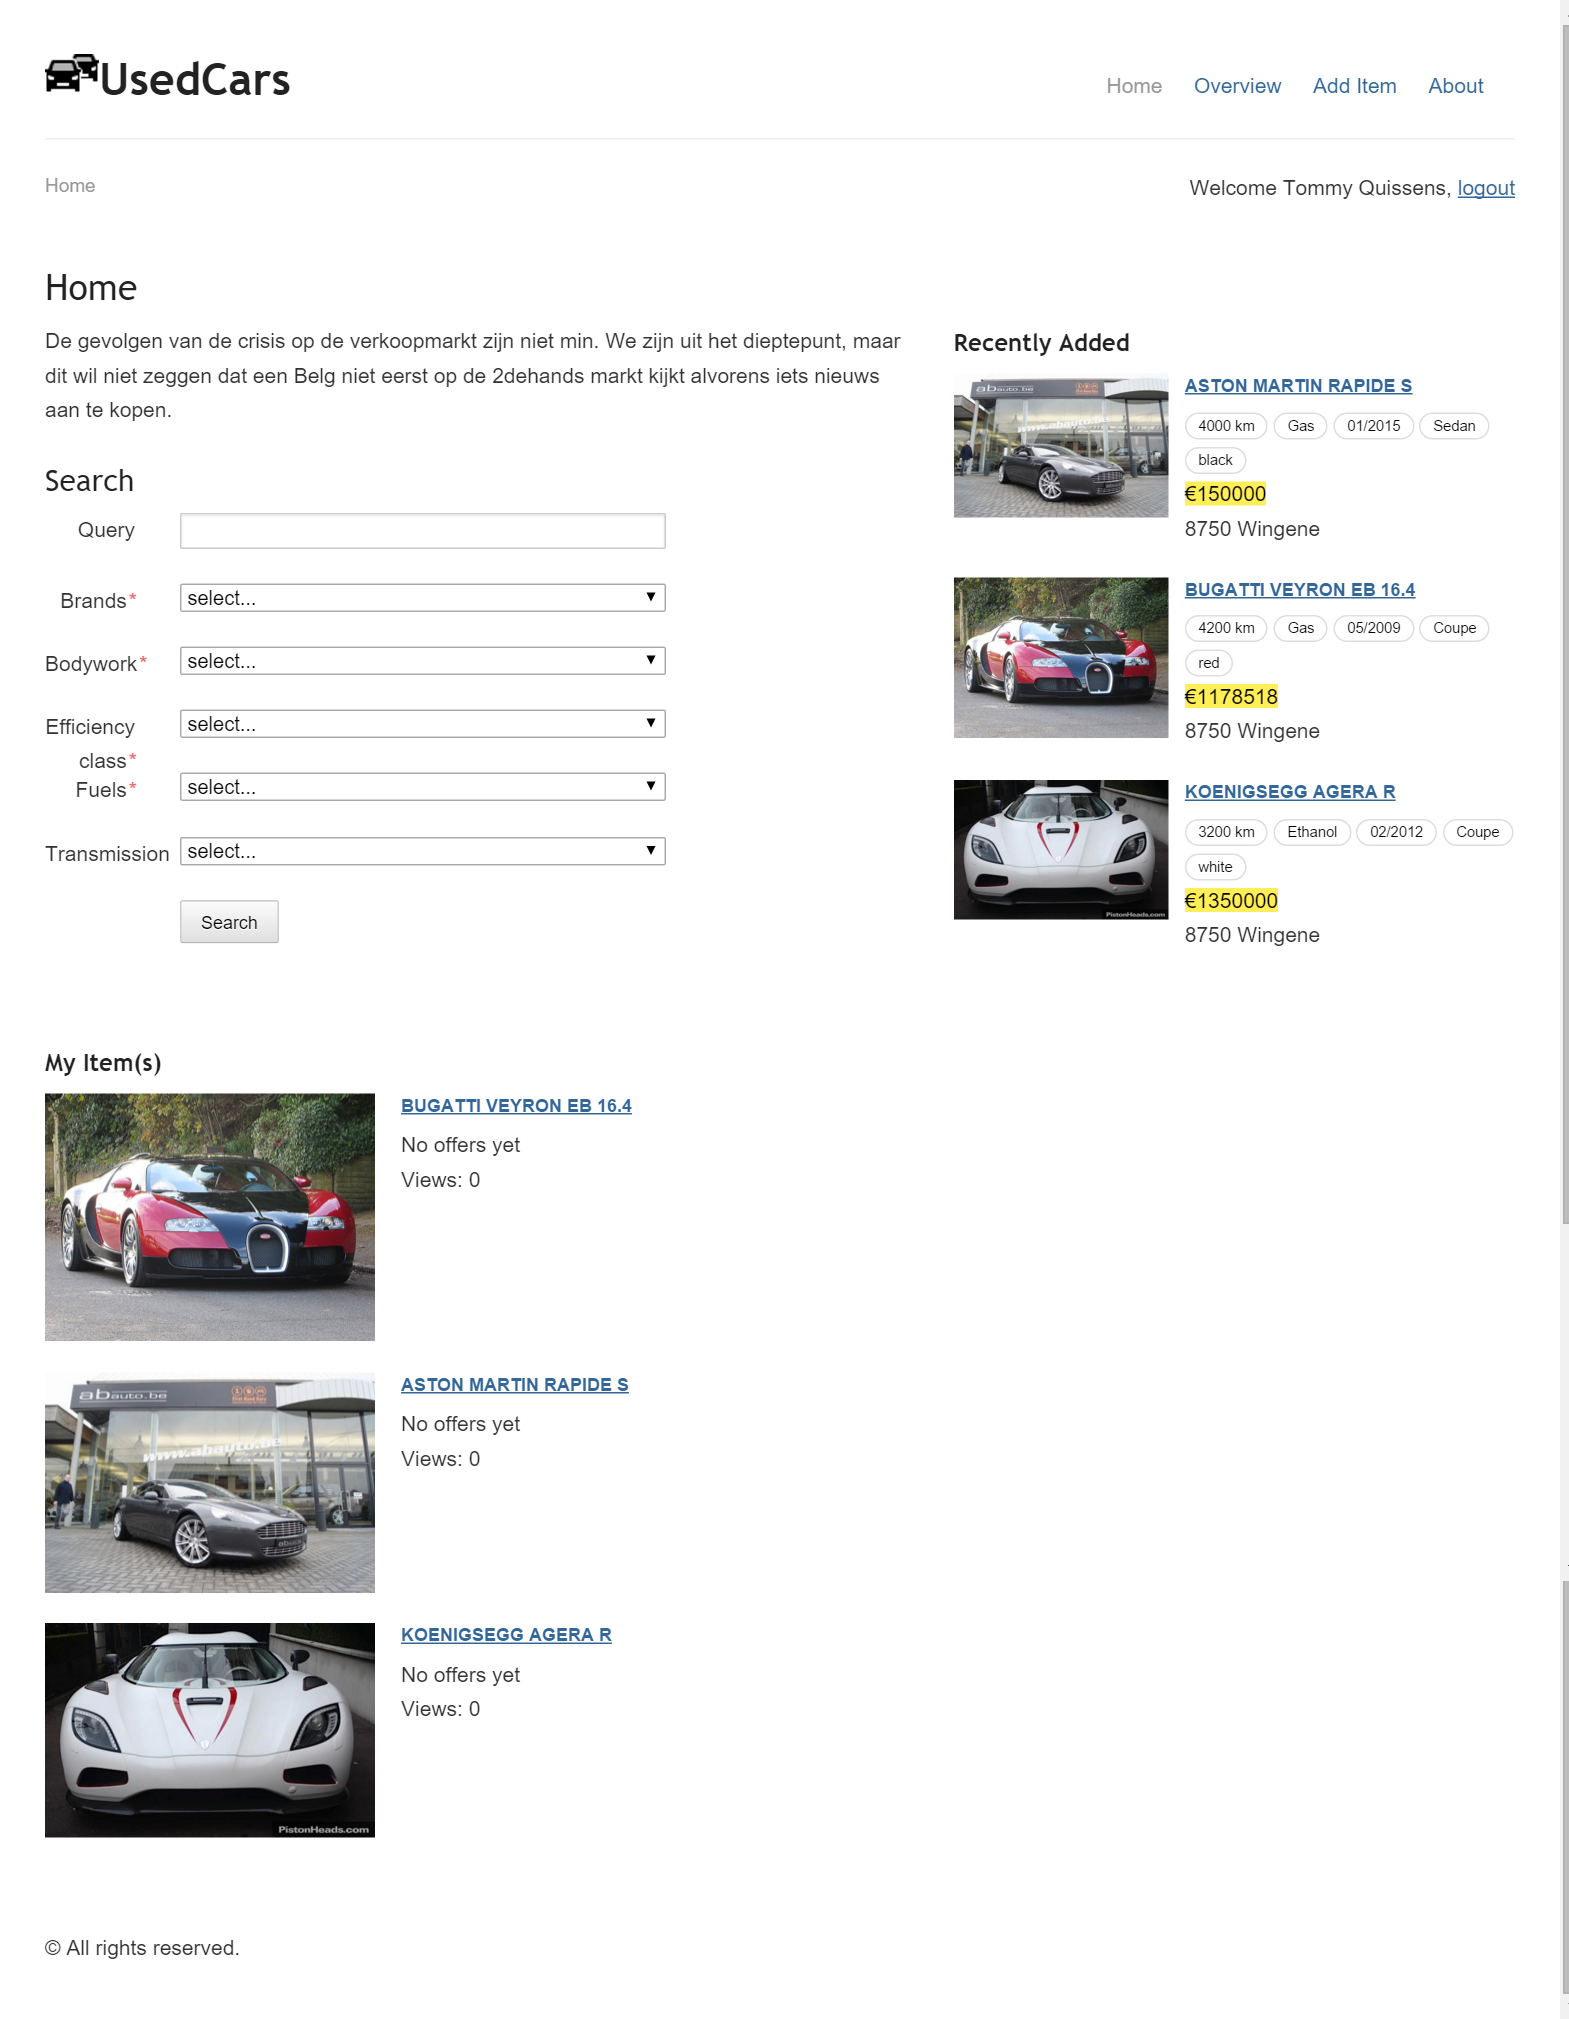 Homepage when logged in (displaying cars owned by user)